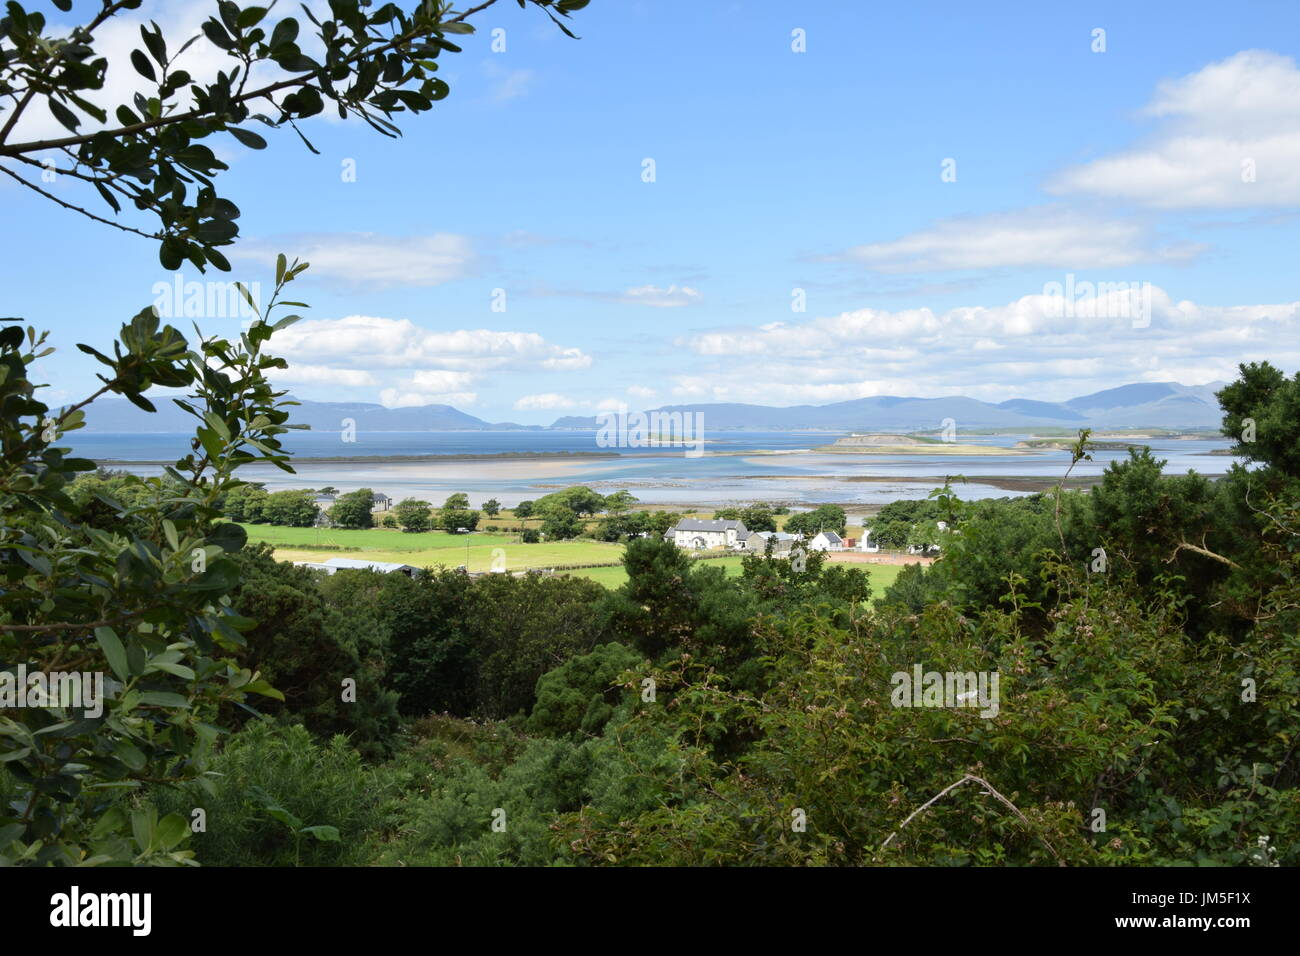 View of the Clew Bay from the top of the Croagh Patrick in the County Mayo, Ireland Stock Photo